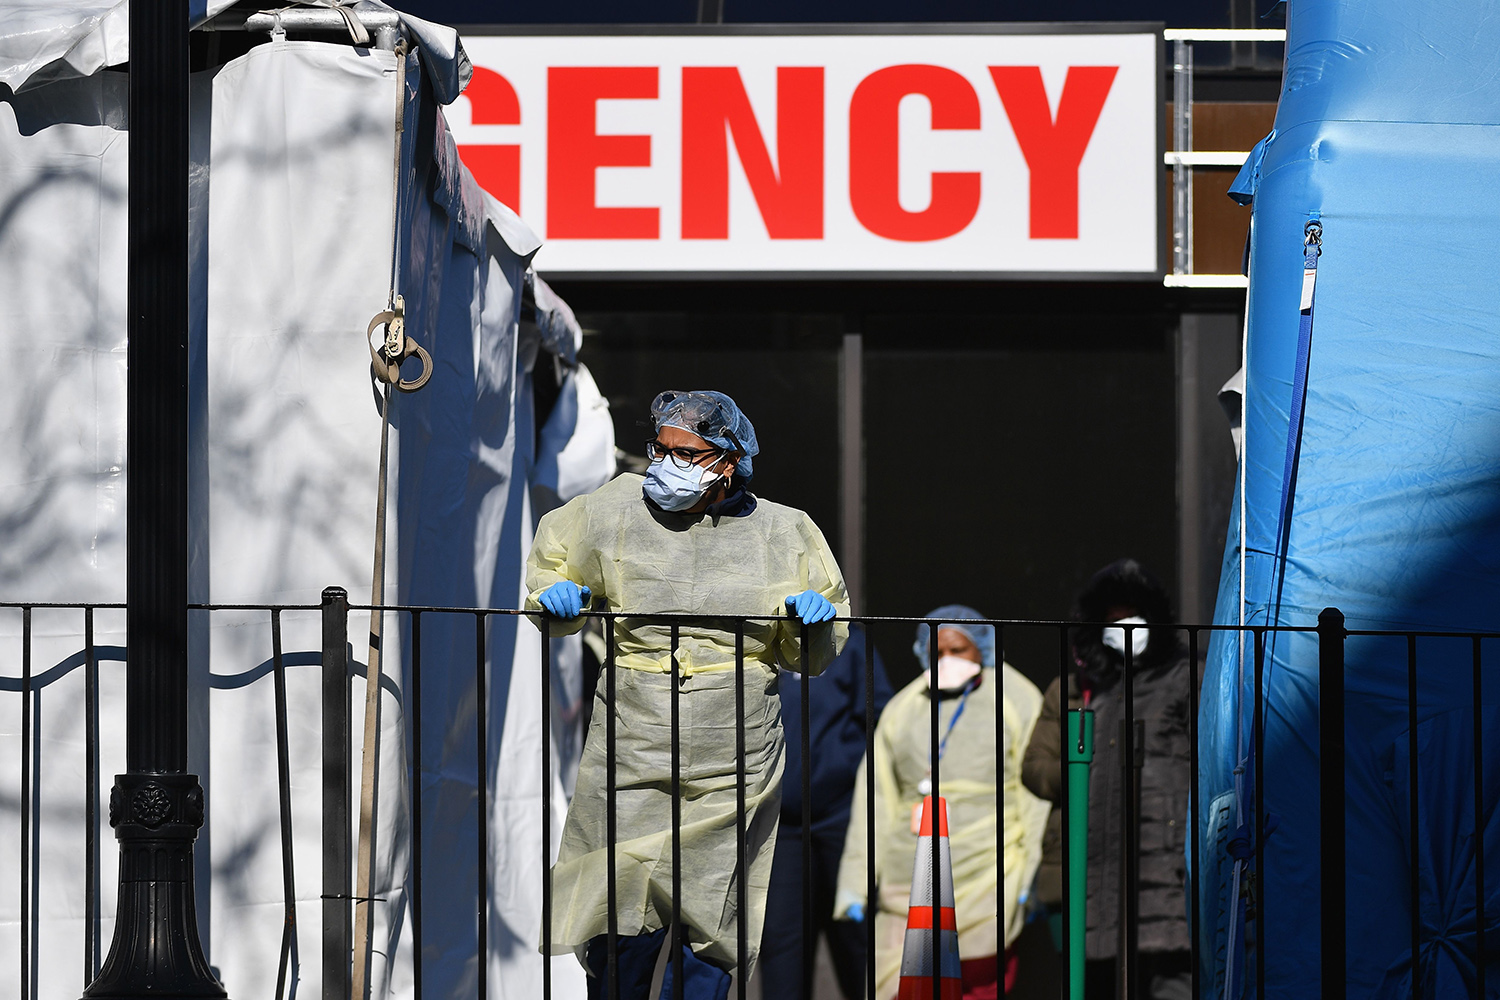 Medical workers step outside Elmhurst Hospital Center in the Queens borough of New York City on March 26. Elmhurst reported 13 deaths from coronavirus in a 24-hour span earlier that week. ANGELA WEISS/AFP via Getty Images